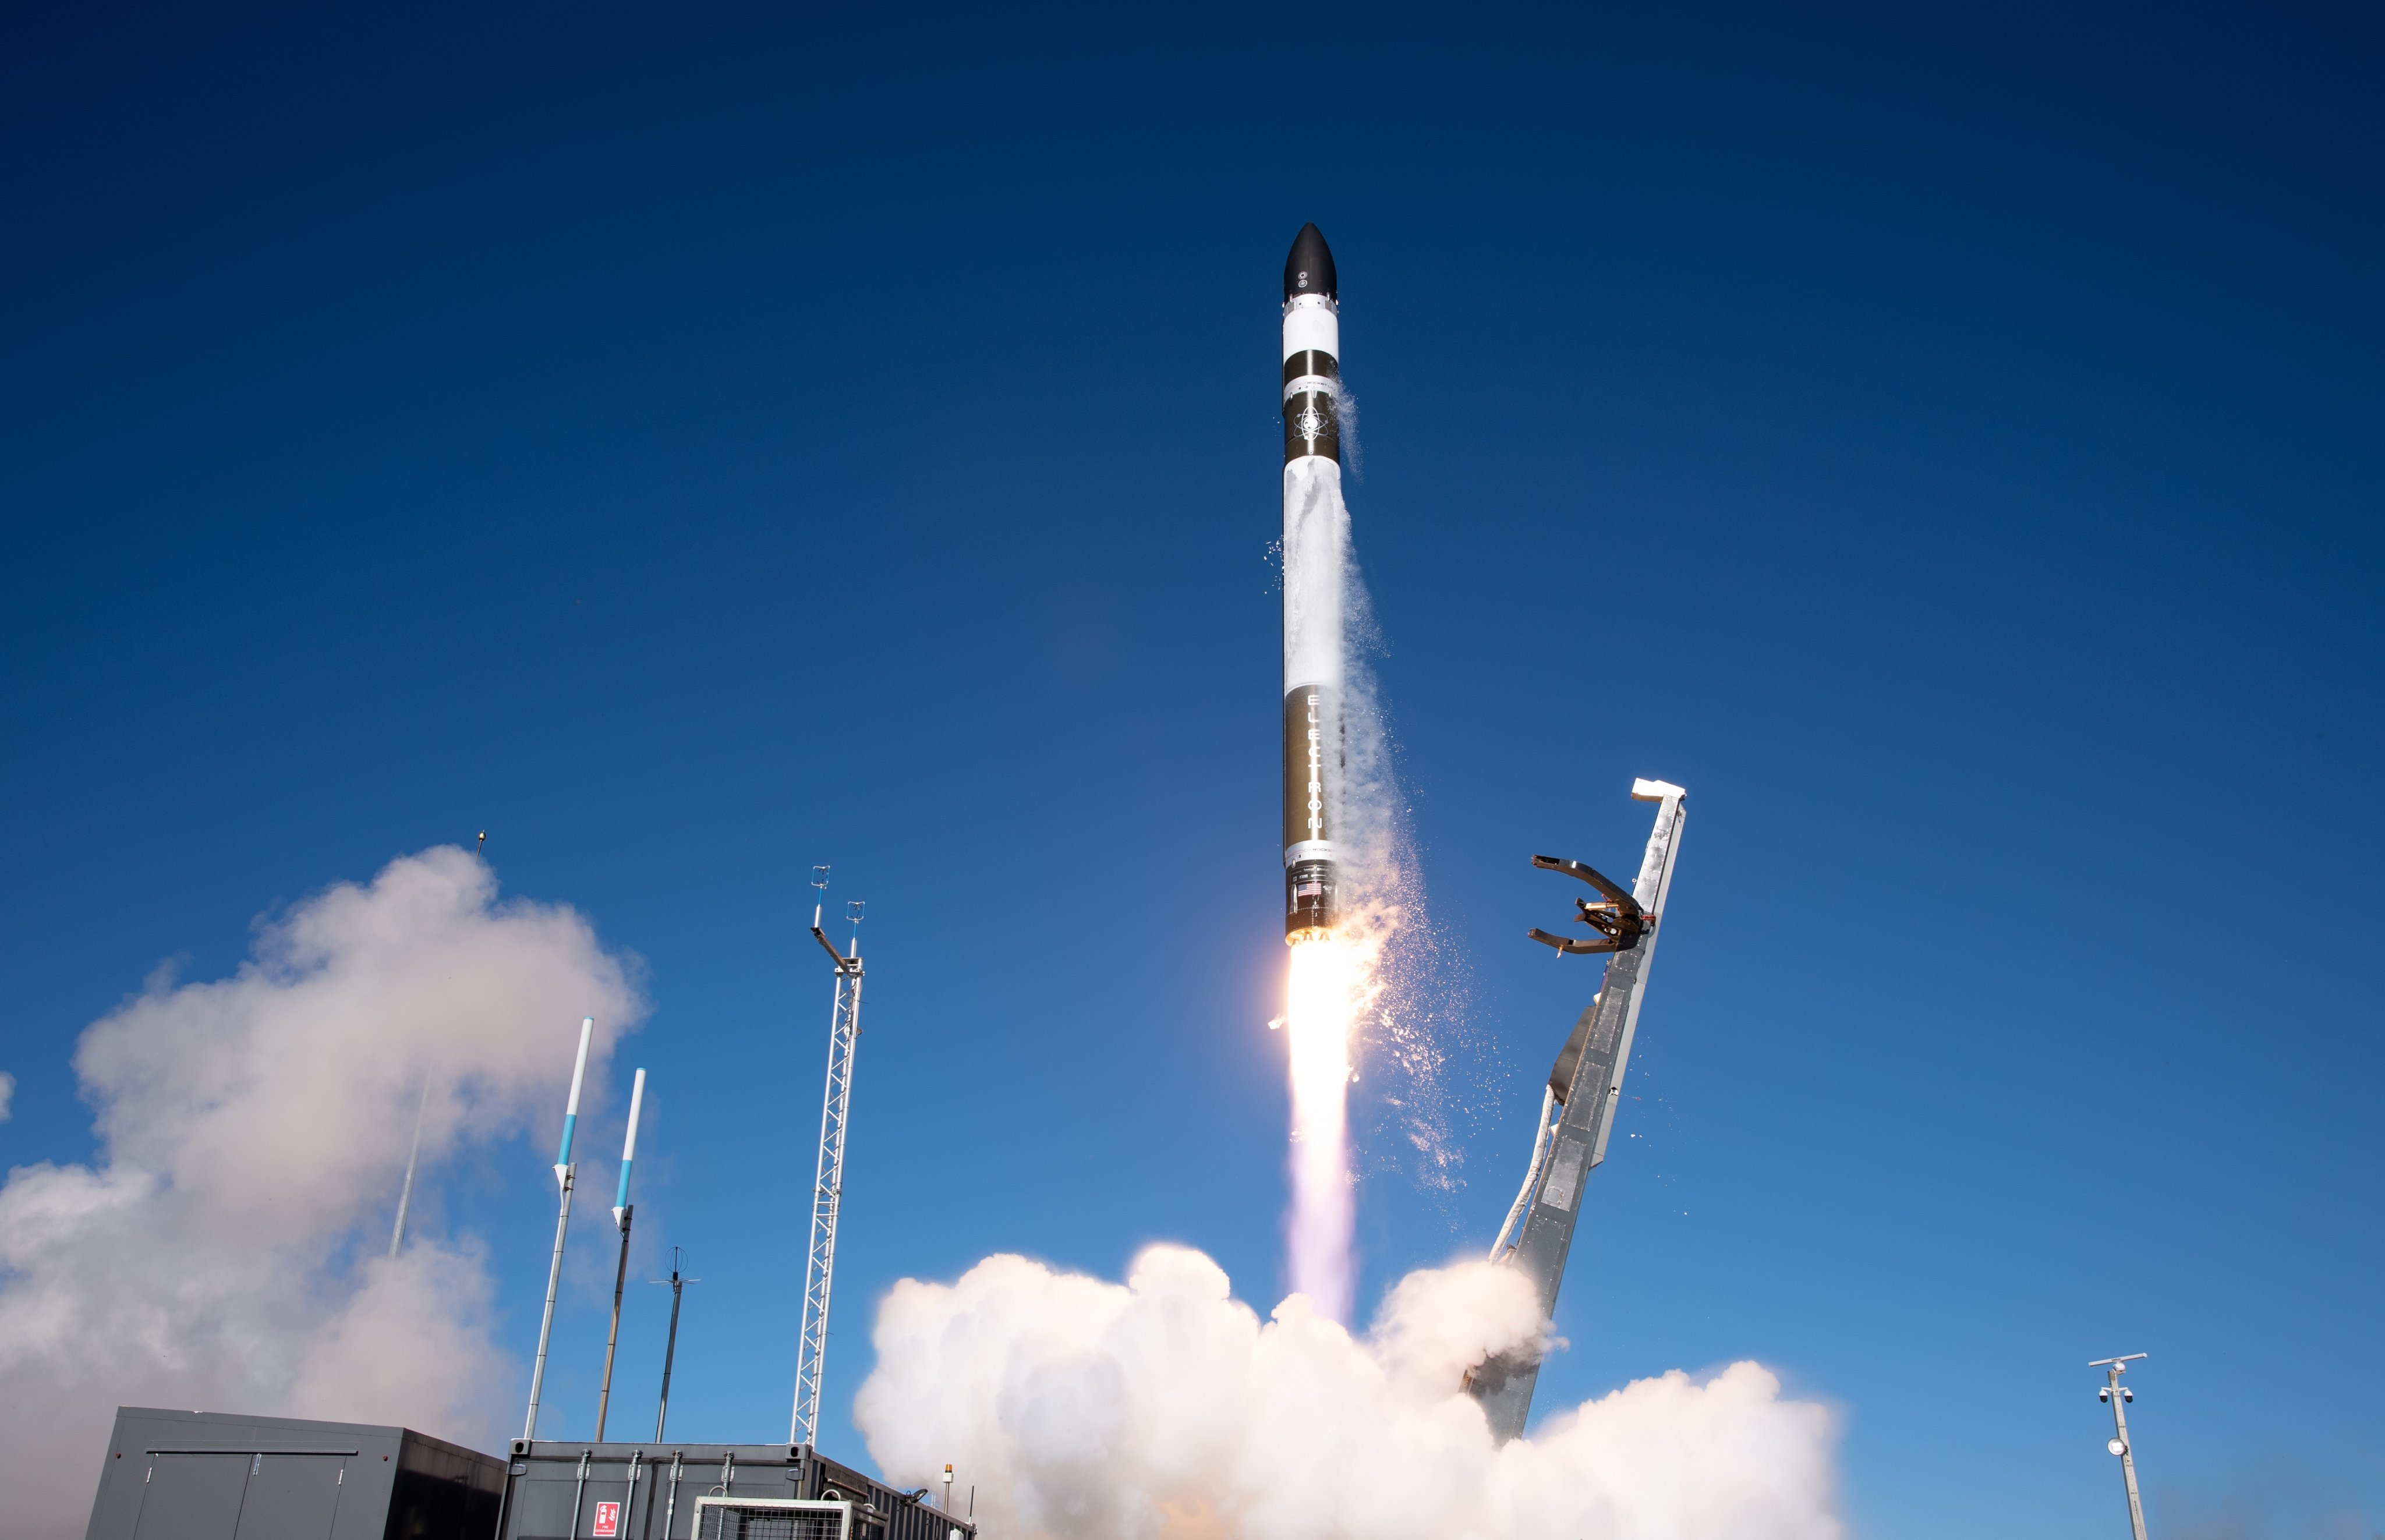 Rocket Lab's Electron rocket makes a successful return to flight